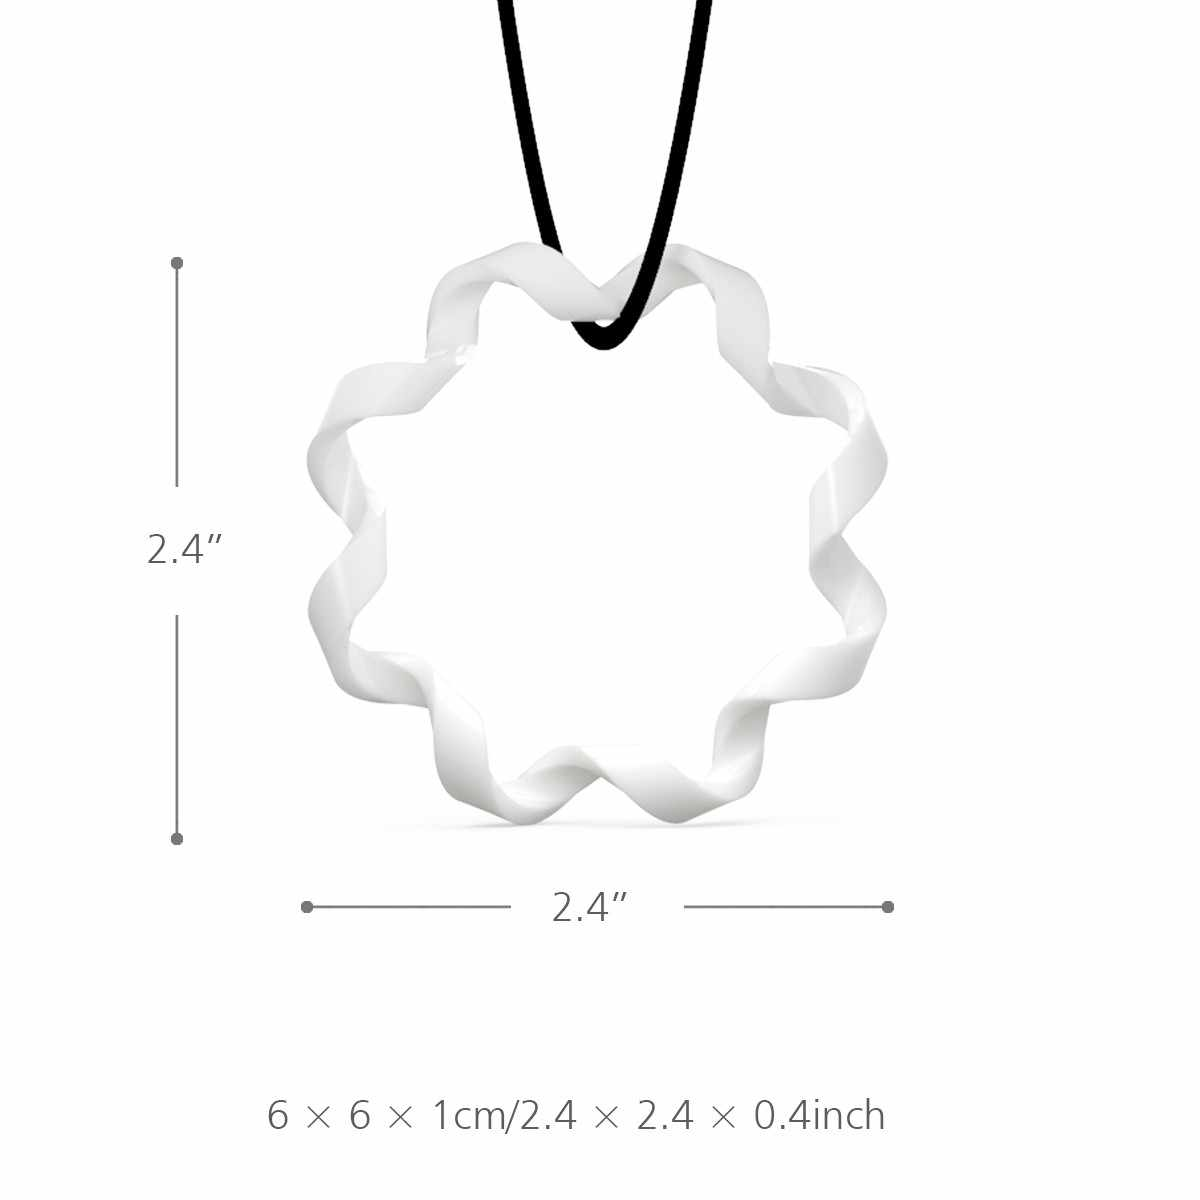 Tooarts 3D Printed Jewelry Rhythm Elegant Modeling Pendant Jewelry Necklace Accessories For Lady